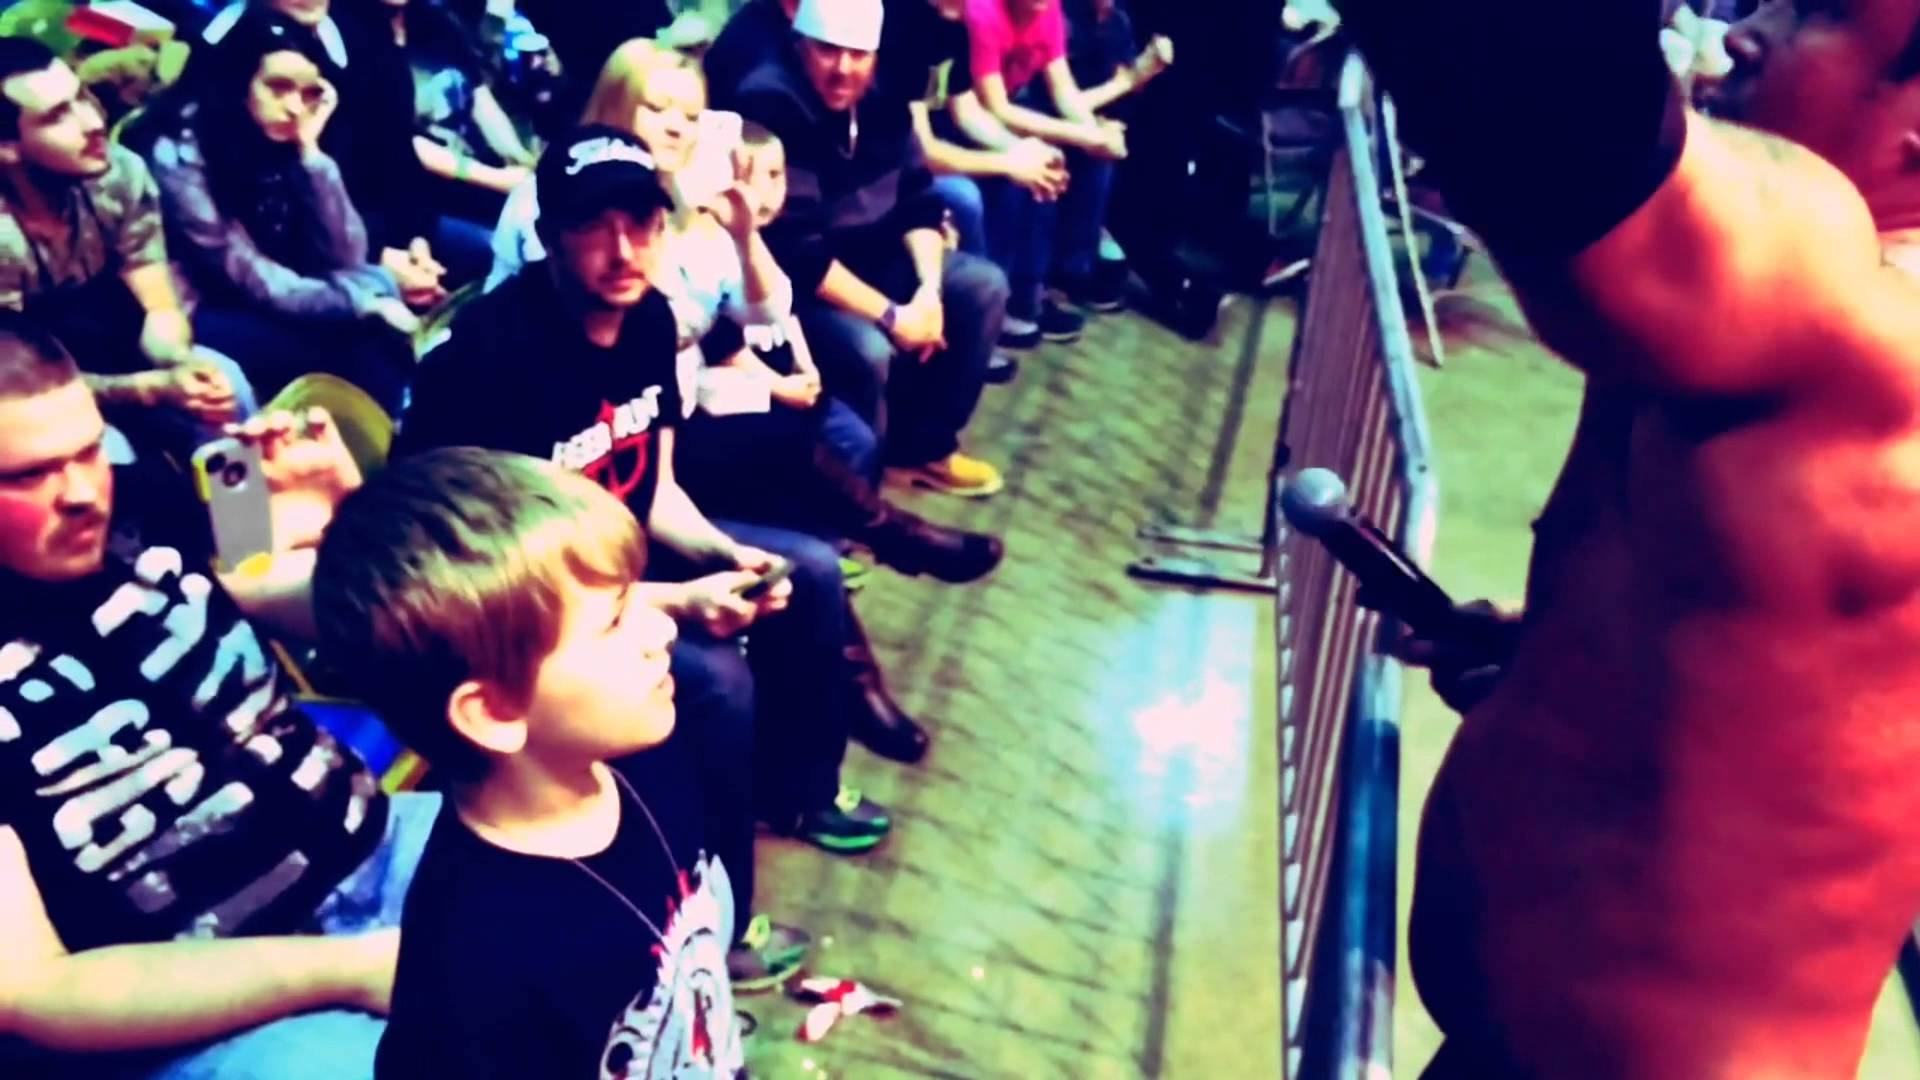 #IMPACT365 Mr. Anderson Finds A Guest Ring Announcer In Beckley, WV